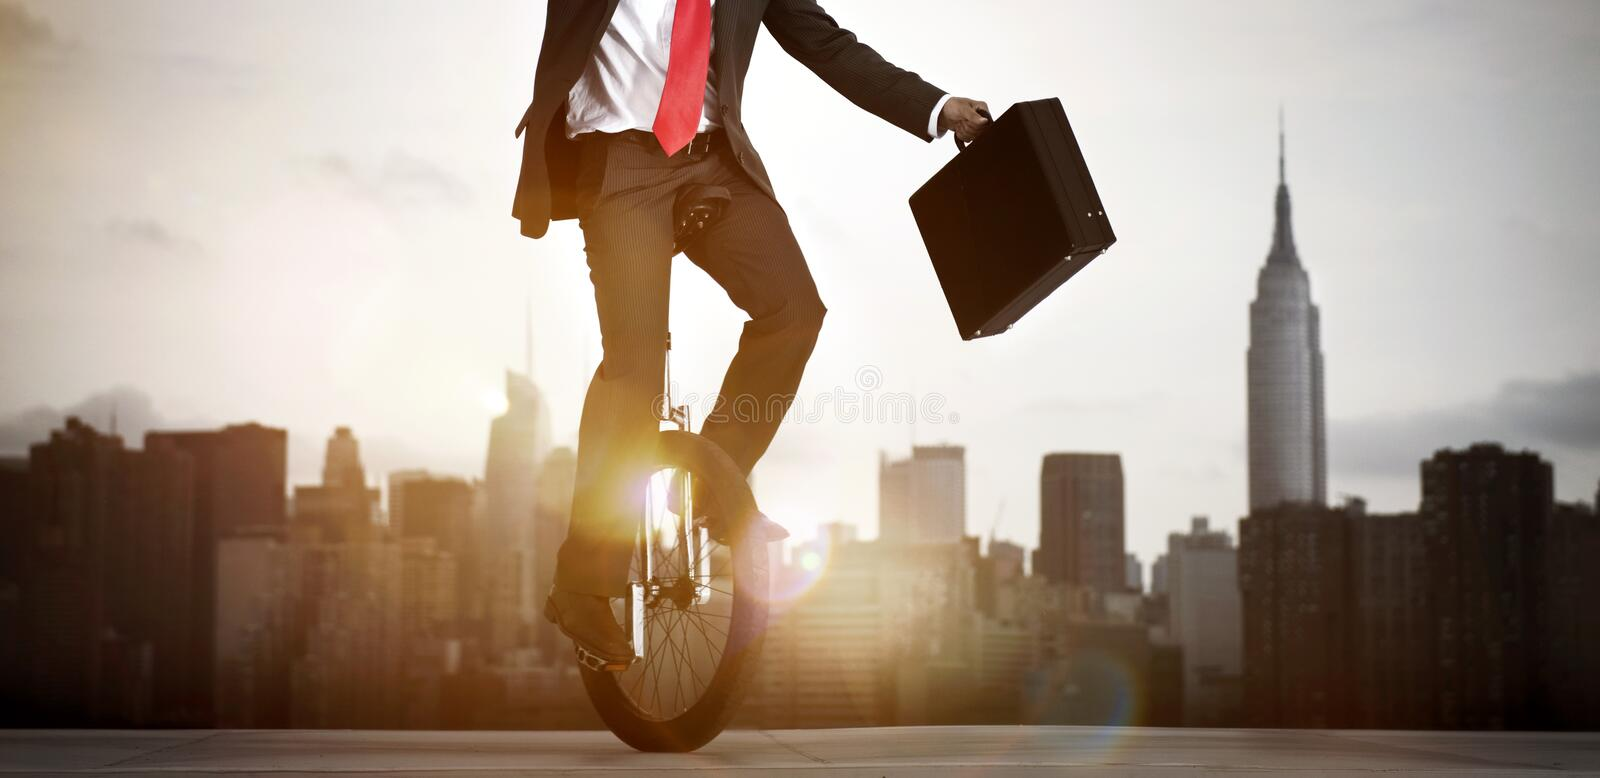 Businessman Taking A Risk In New York City.  royalty free stock images